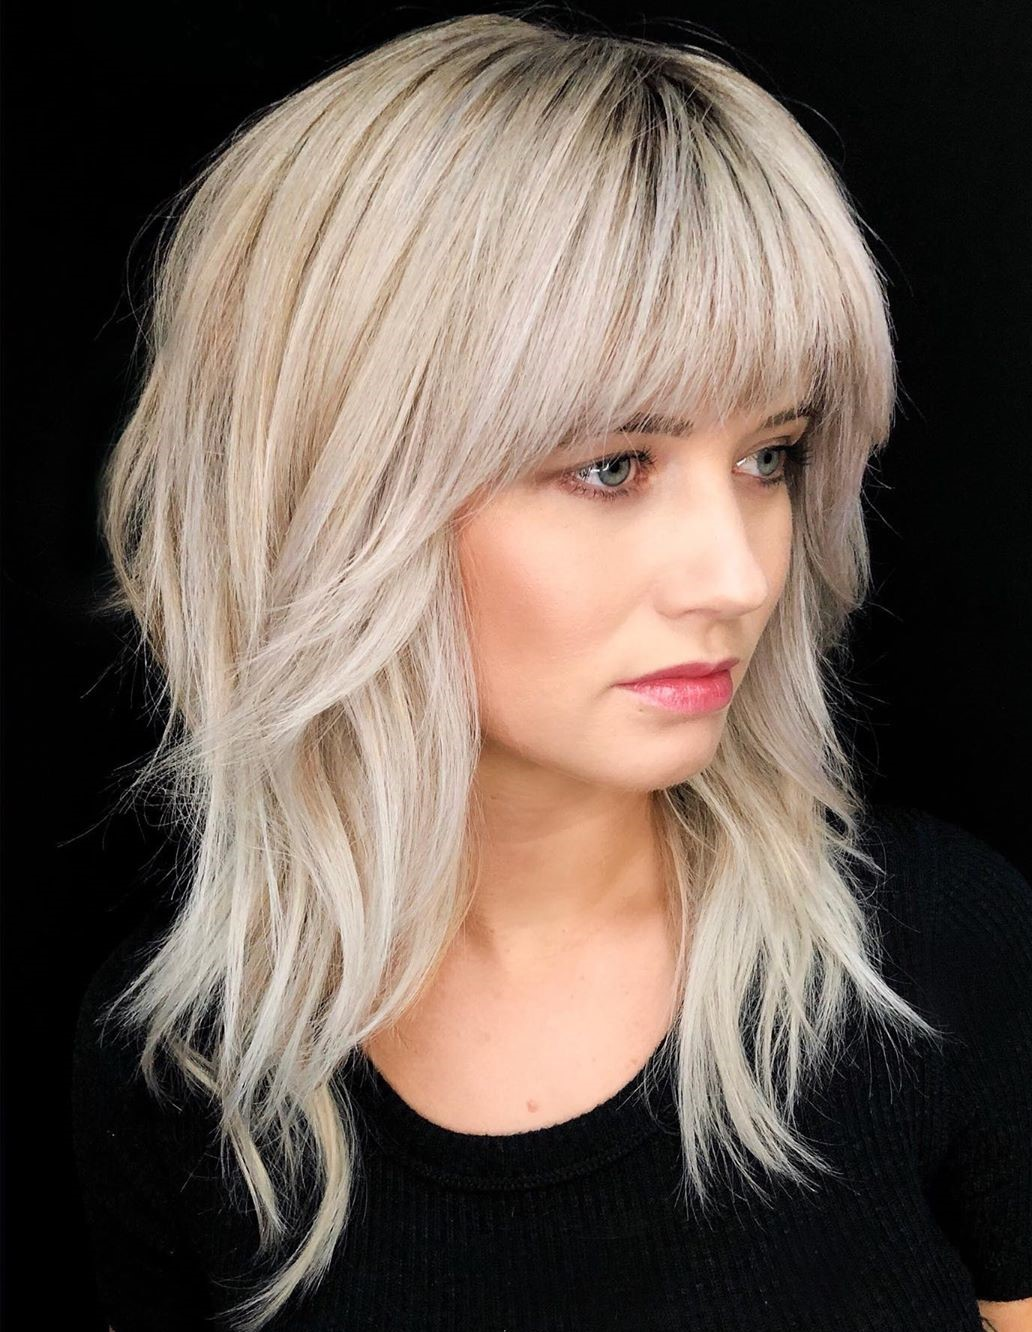 Medium Haircut with Bangs for Women